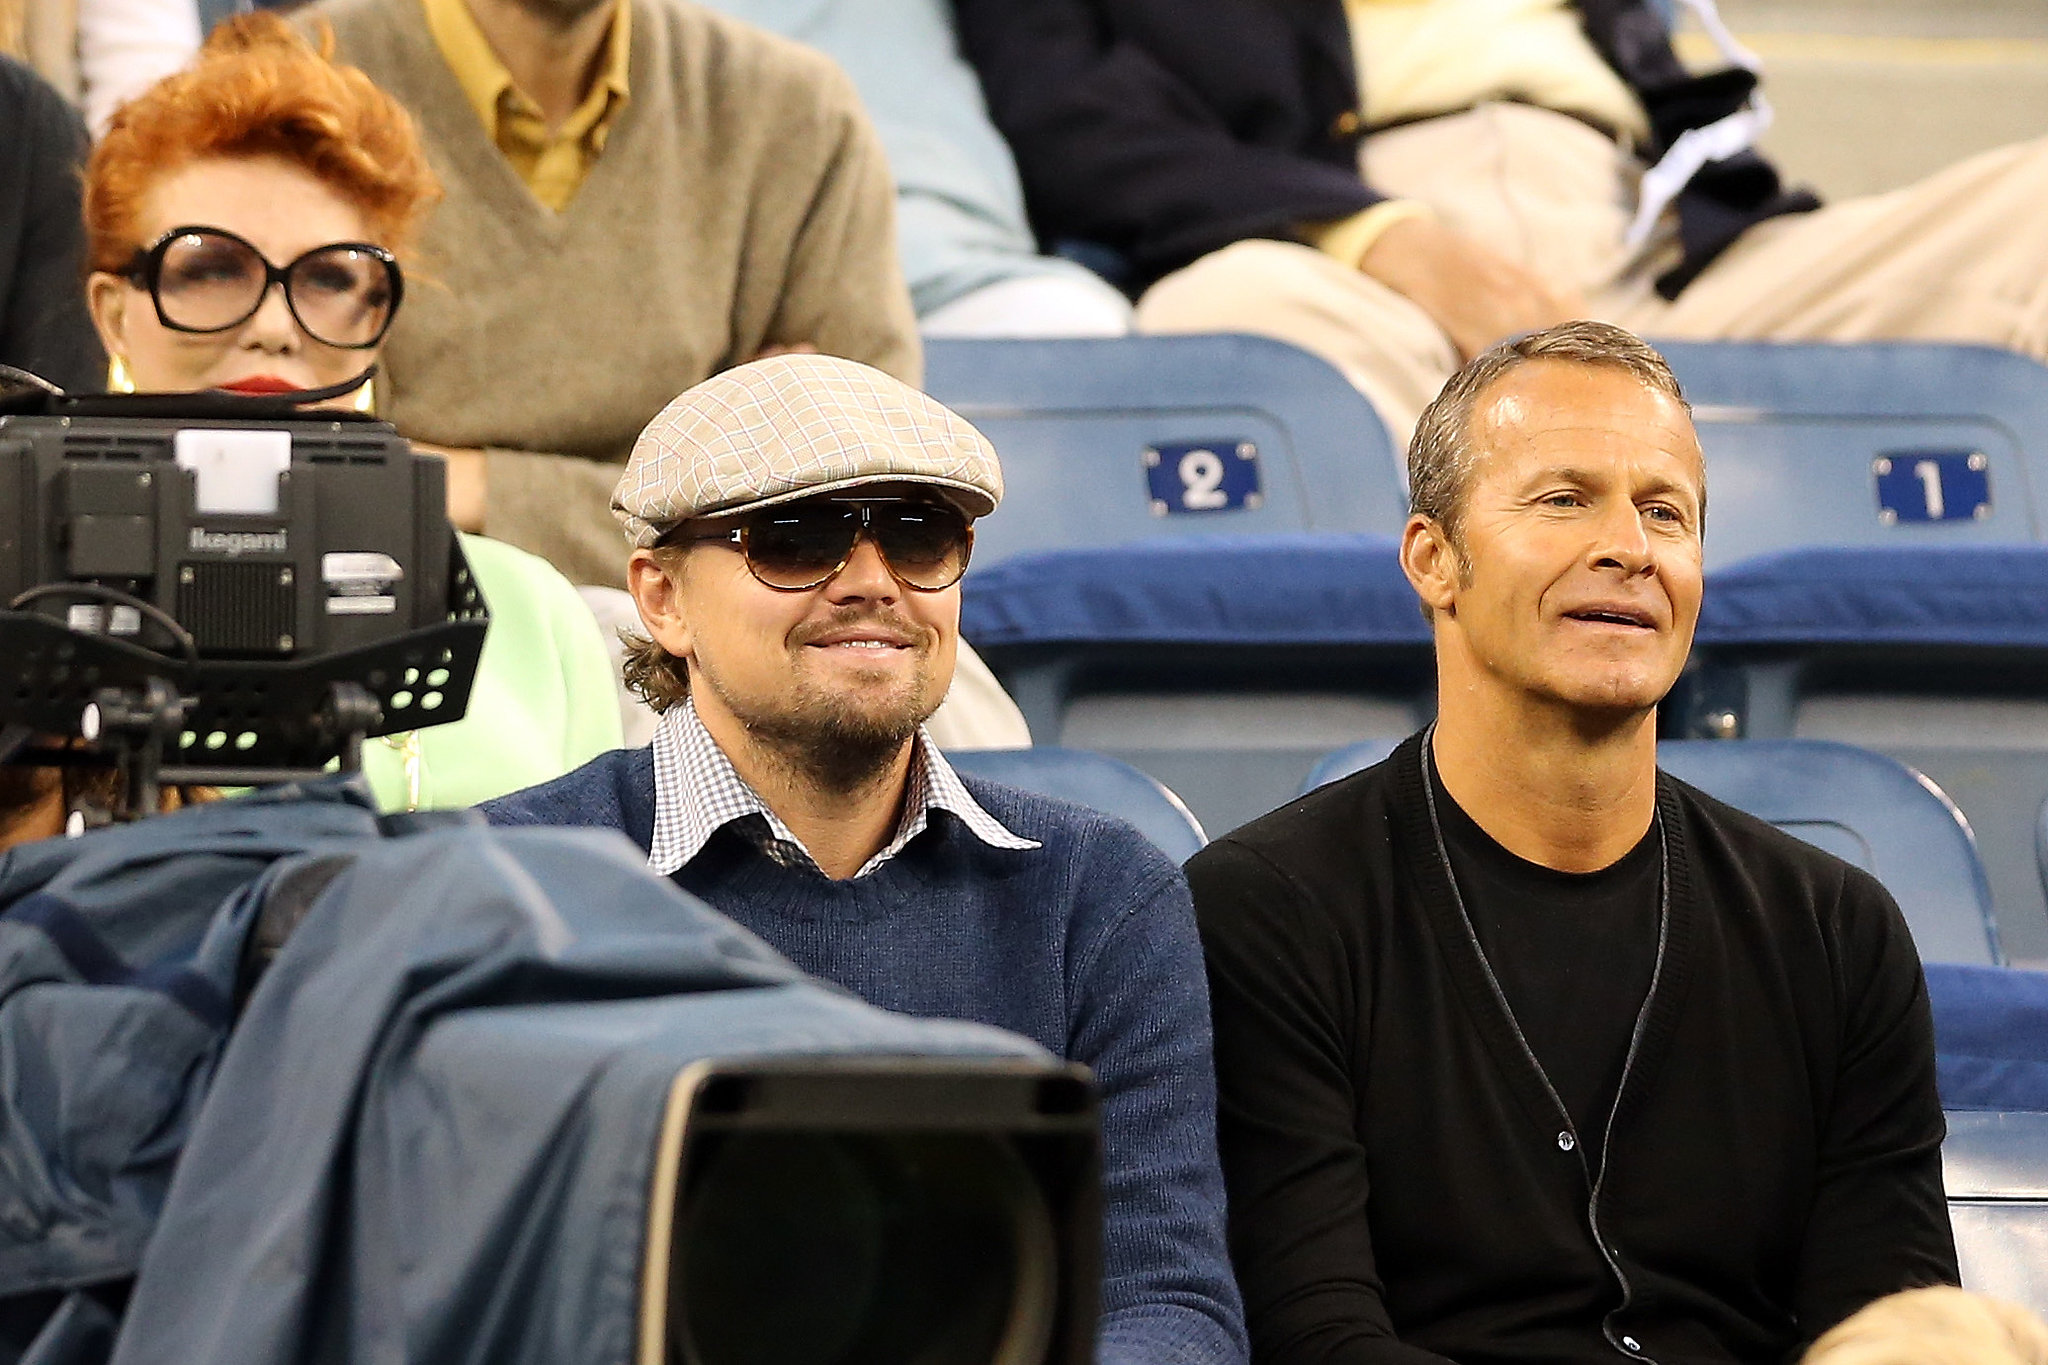 Leonardo DiCaprio flashed a smile during the US Open.